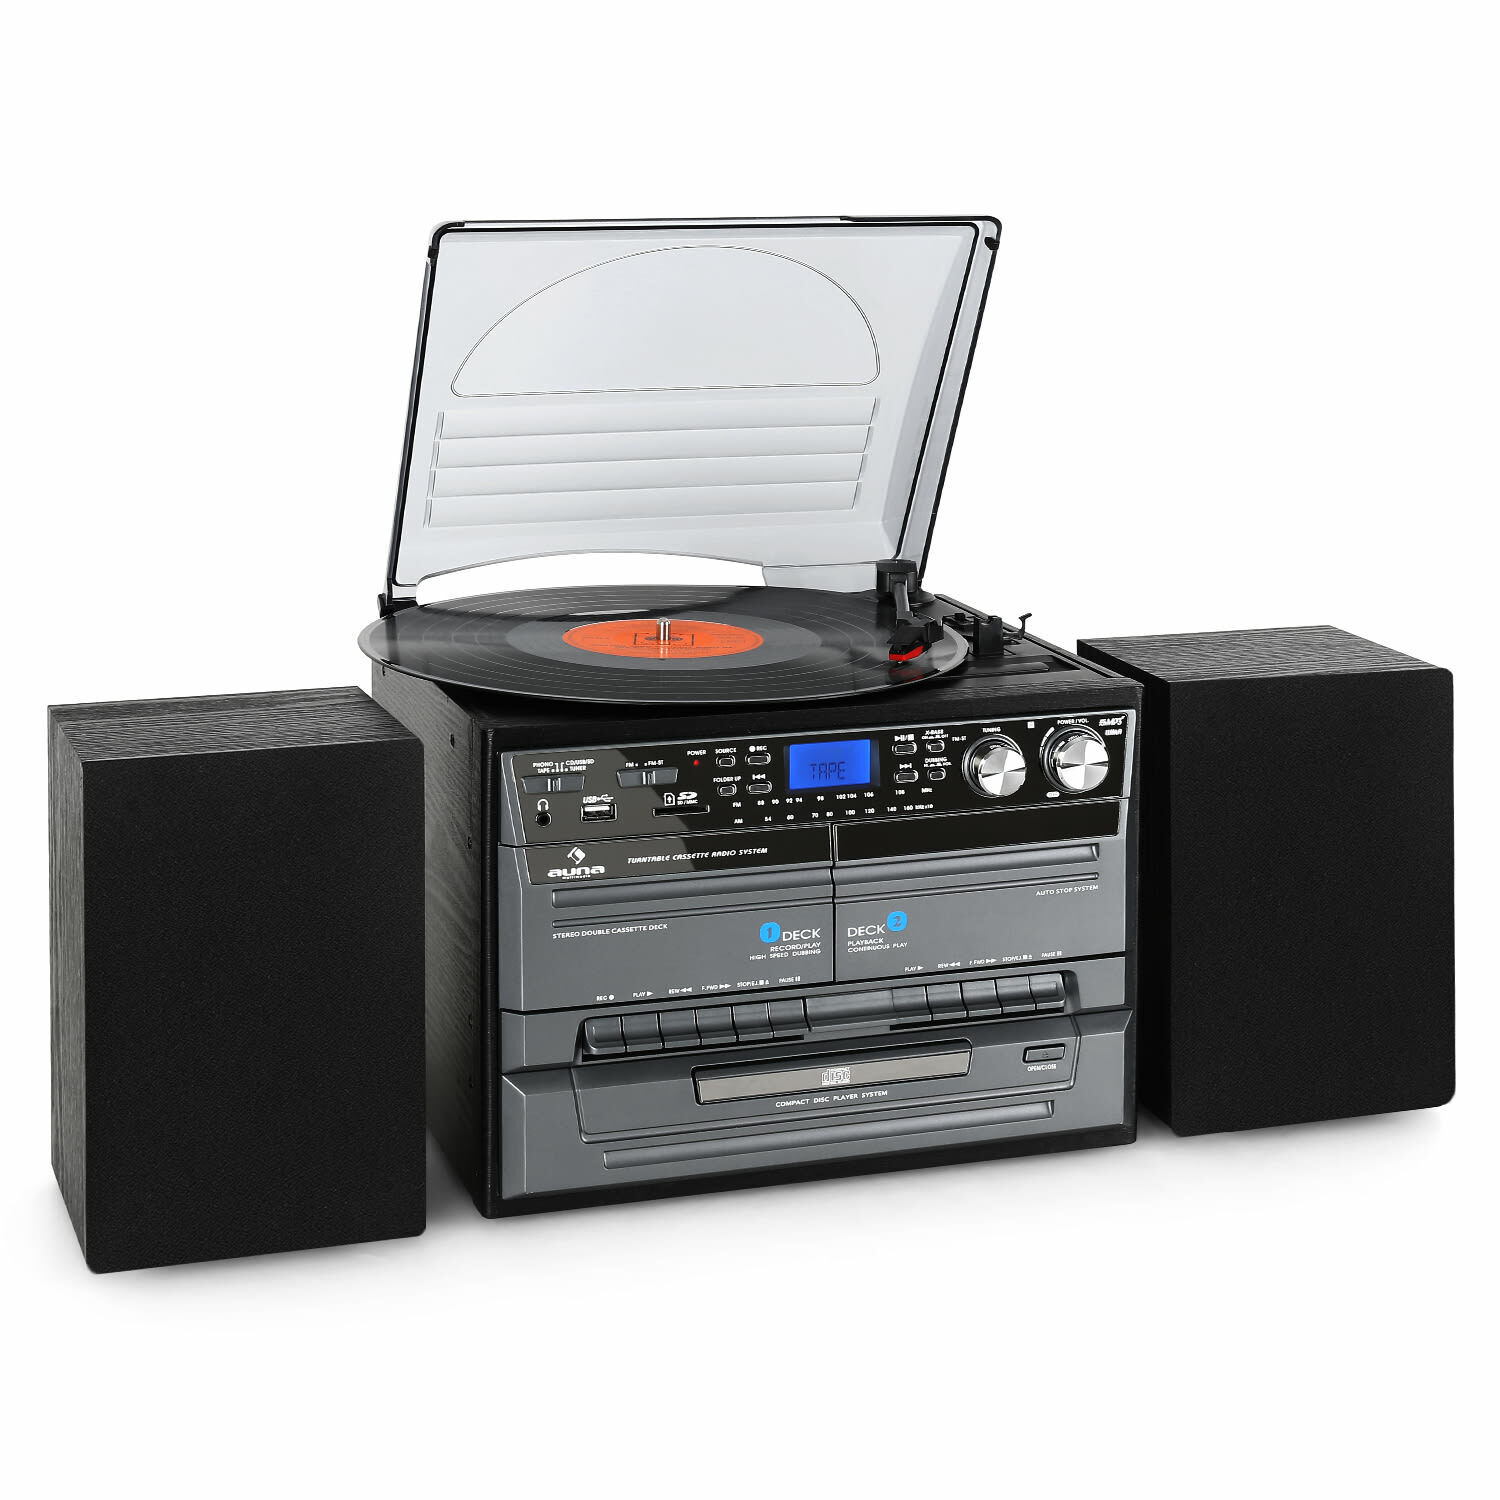 mini chaine hifi lecteur cd usb sd platine vinyl enceinte stereo k7 encodage mp3 eur 129 99. Black Bedroom Furniture Sets. Home Design Ideas